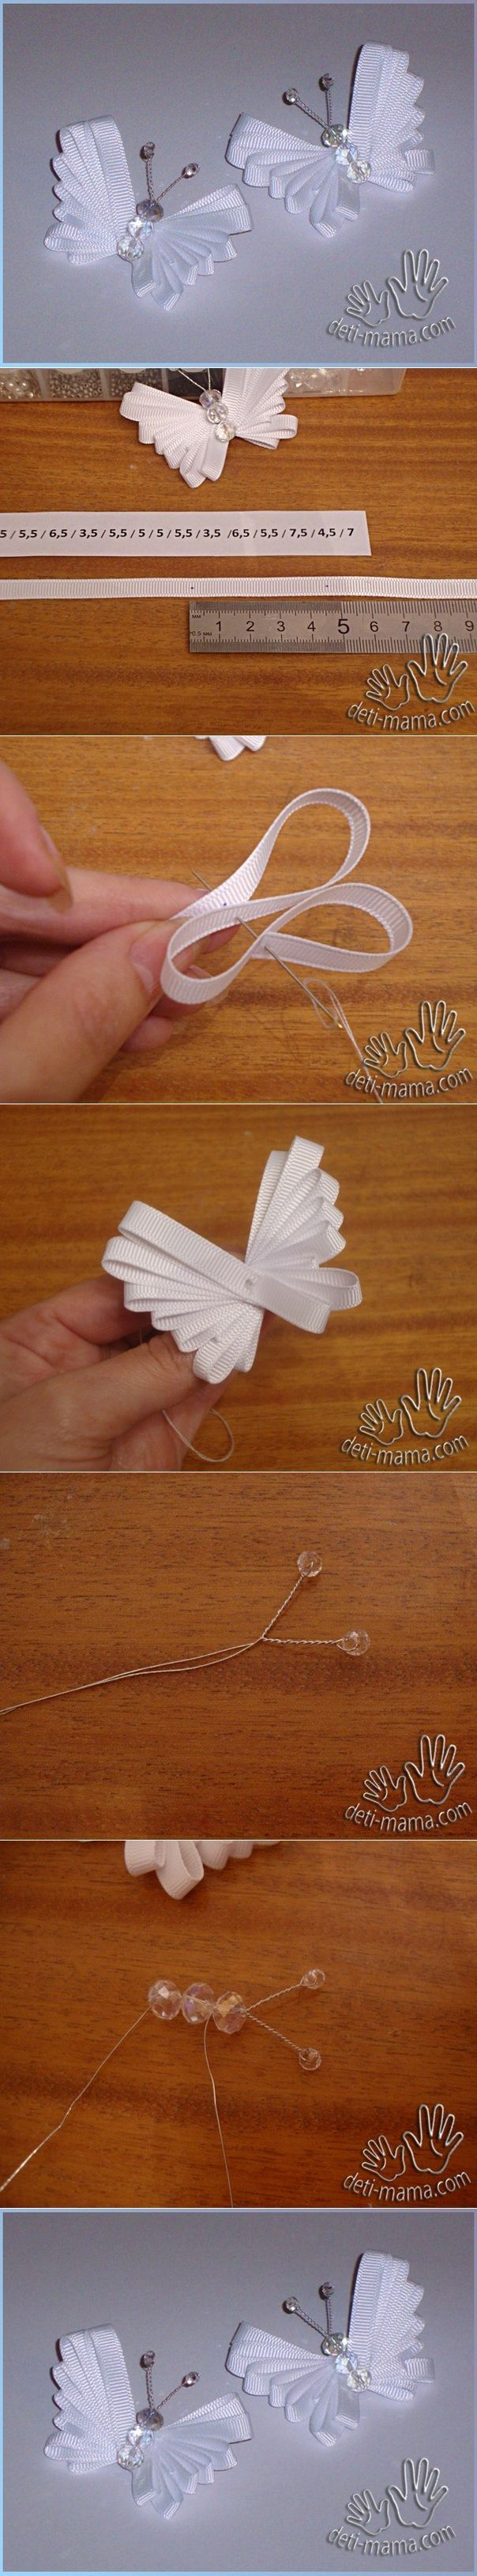 Make a butterfly out of ribbon!